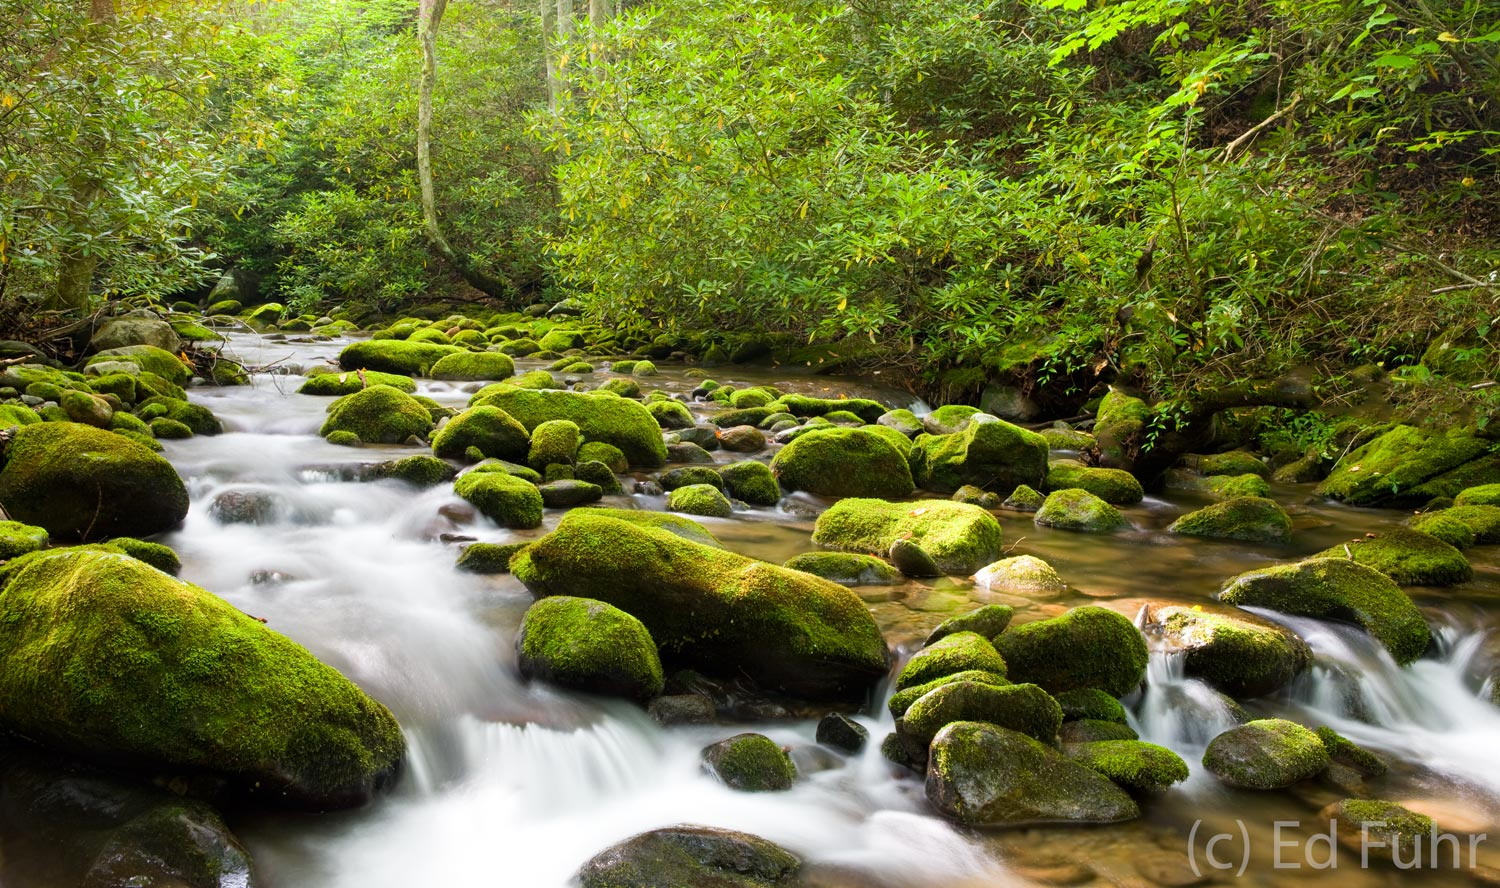 Roaring fork spring great smoky mountains np ed fuhr for Roaring fork smoky mountains